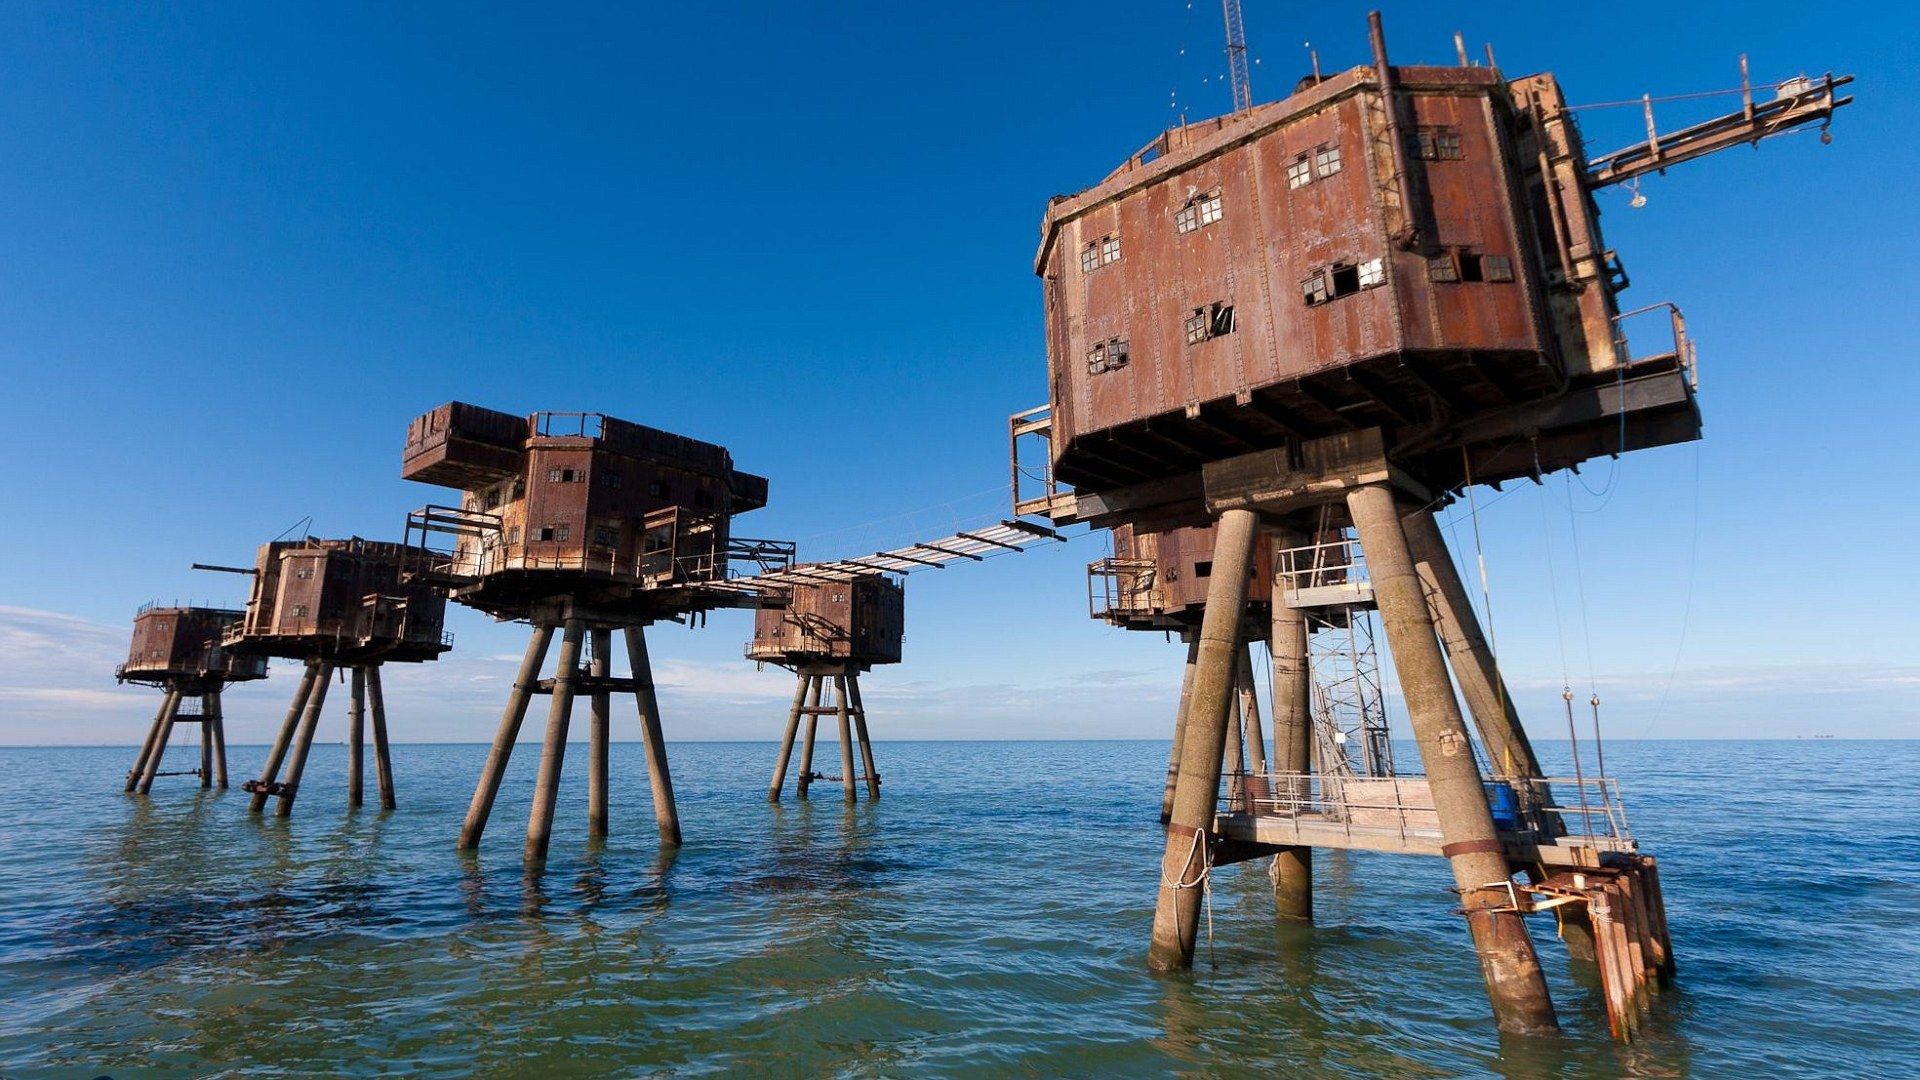 "Mandatory Credit: Photo by DaveHamilton/Bournemouth New/REX/Shutterstock (4894900h) The Maunsell Forts were small fortified towers built in the Thames and Mersey estuaries during the Second World War New book 'Wild Ruins' reveals hidden locations of ruins and forgotten relics, Britain - Jun 2015 *Full story: http://www.rexfeatures.com/nanolink/qlrx The hidden locations of hundreds of historic ruins and forgotten relics have been revealed in the first ever guide to Britain's crumbling past. Author Dave Hamilton has spent more than three years travelling the length and breadth of the country chronicling little-known and hard-to-find remains of abandoned castles, churches, settlements and industrial works. His new book 'Wild Ruins' lifts the lid on more than 250 haunting sites nationwide in a bid to reconnect people with the country's history. Explaining the inspiration behind his book, Dave said: ""What really tipped the balance was a trip to Fussell's Iron Works at Mells, near where I live. It's a sprawling Victorian ruin but it's not on any tourist maps and it made me think what else could be out there"". He adds: ""I want the book to encourage people to visit these sites to learn about and marvel in our past""."